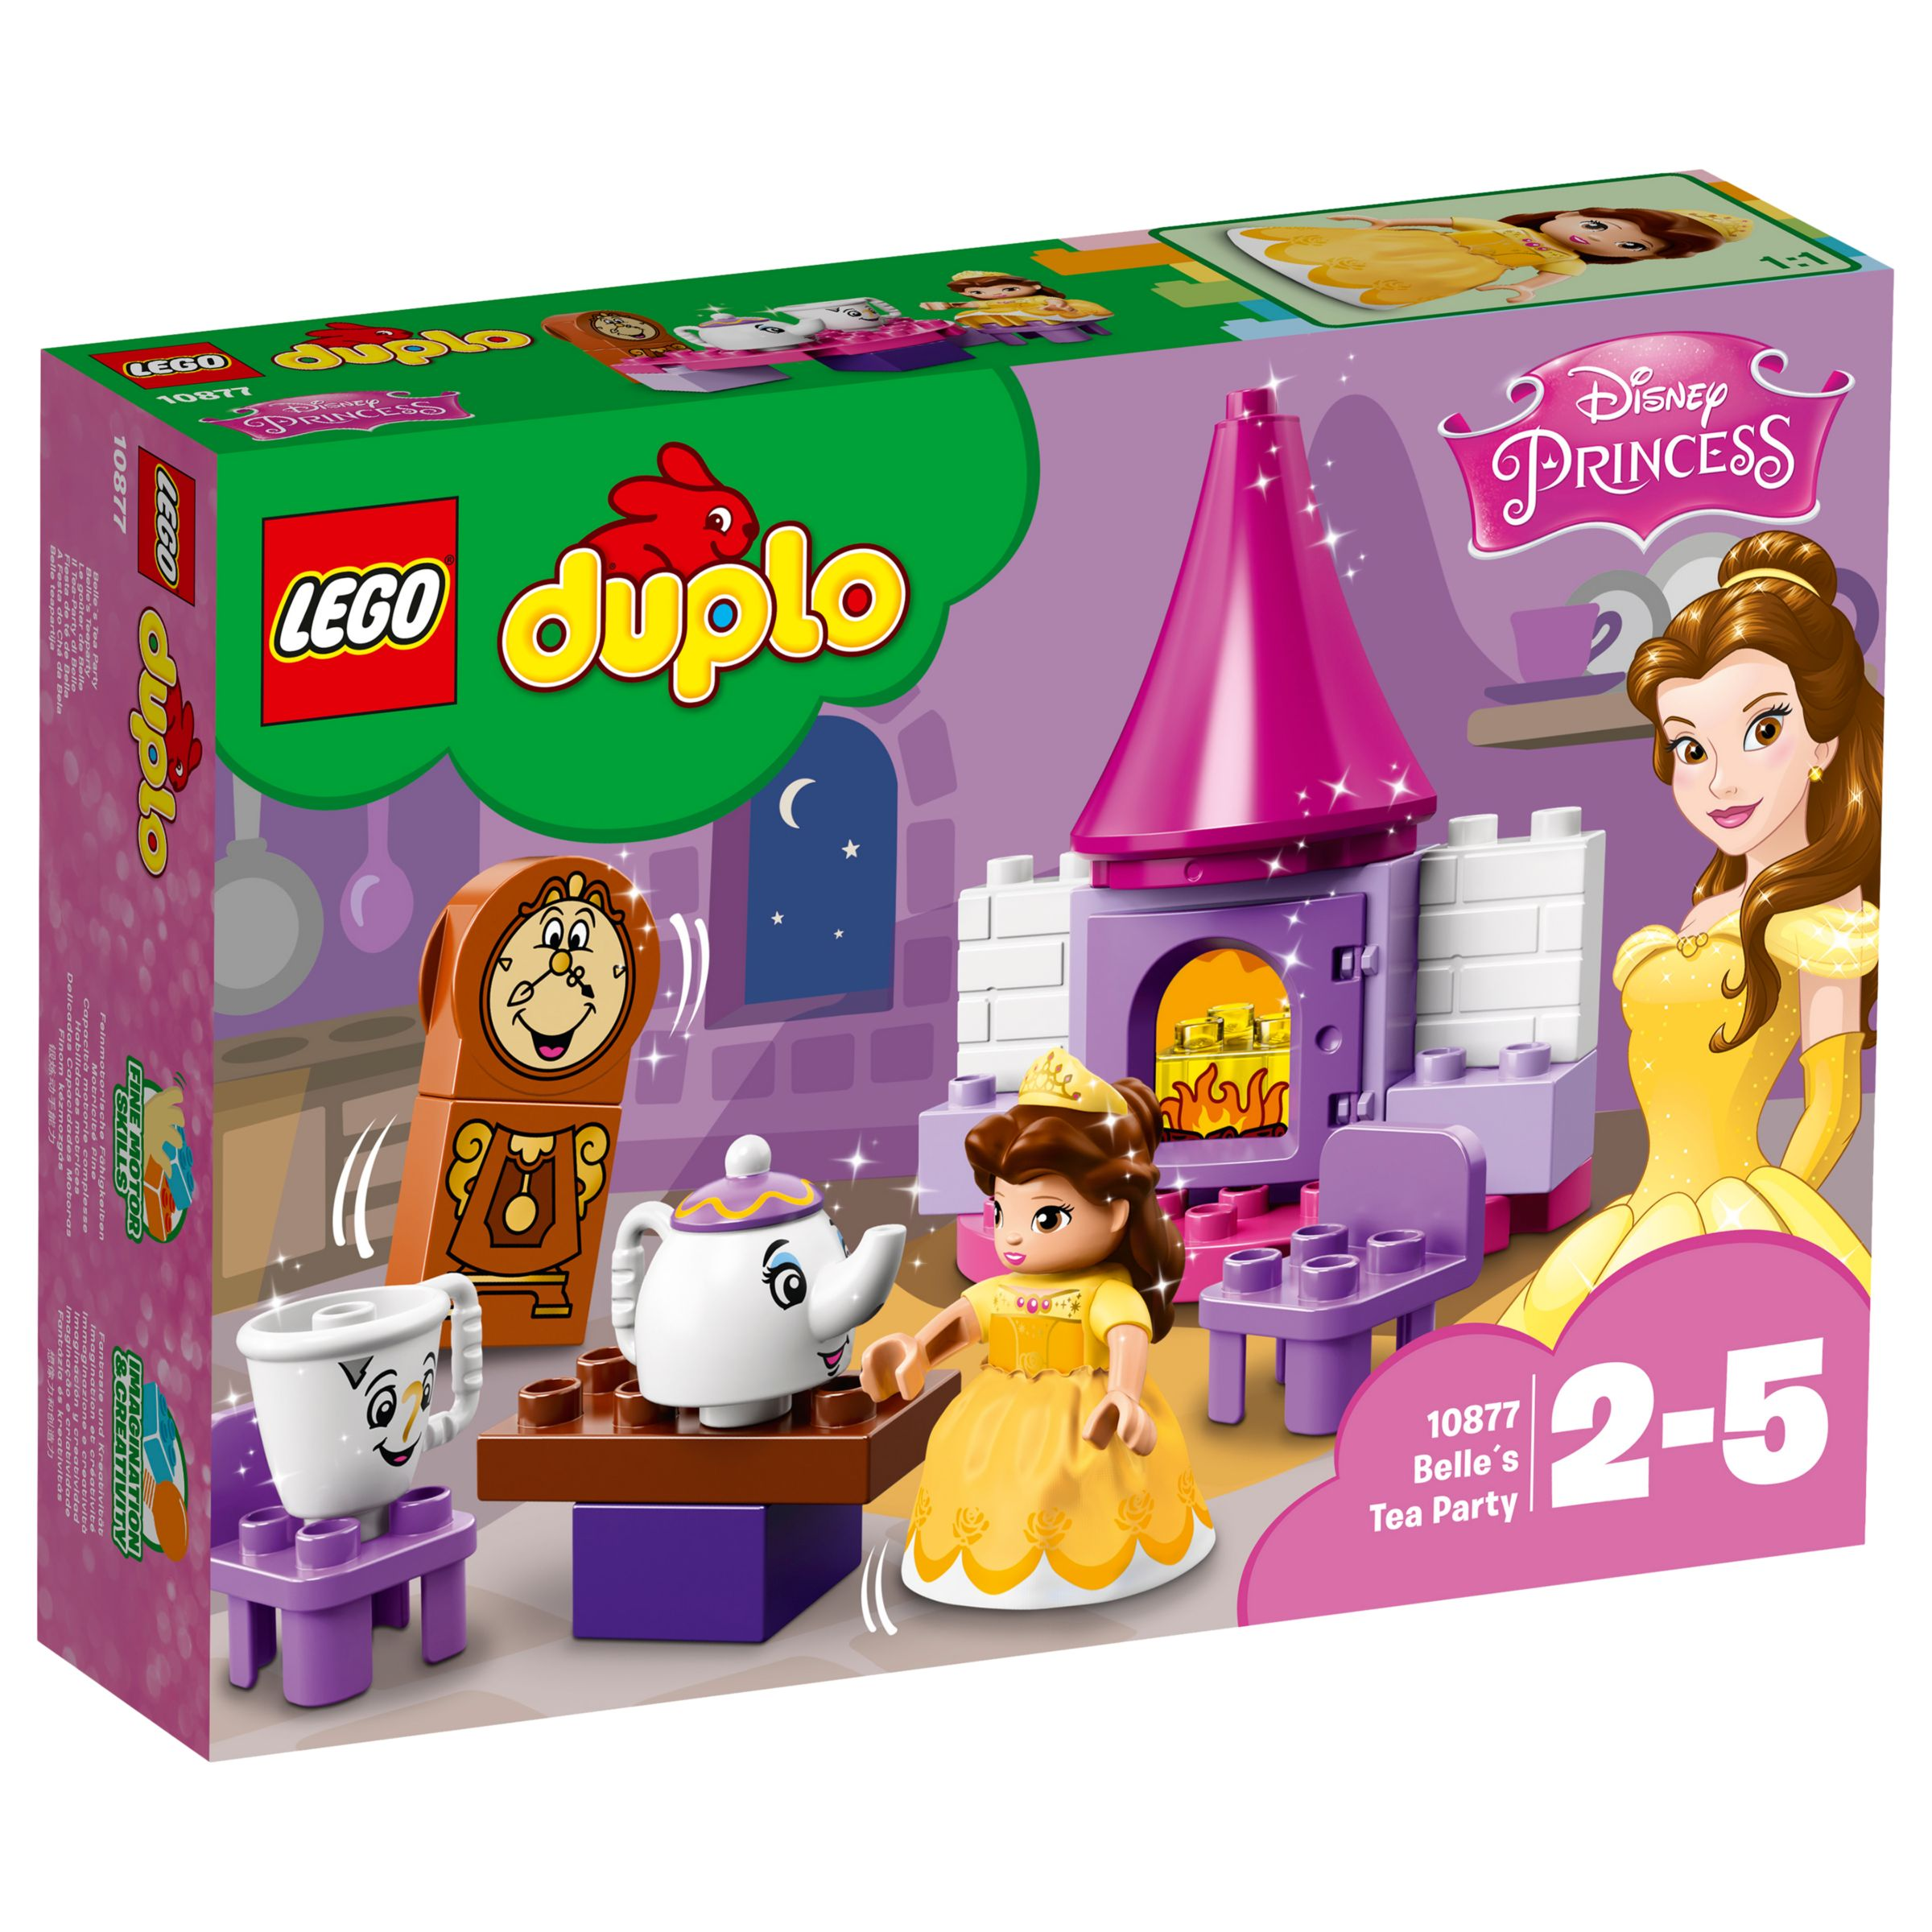 LEGO DUPLO 10877 Beauty and the Beast